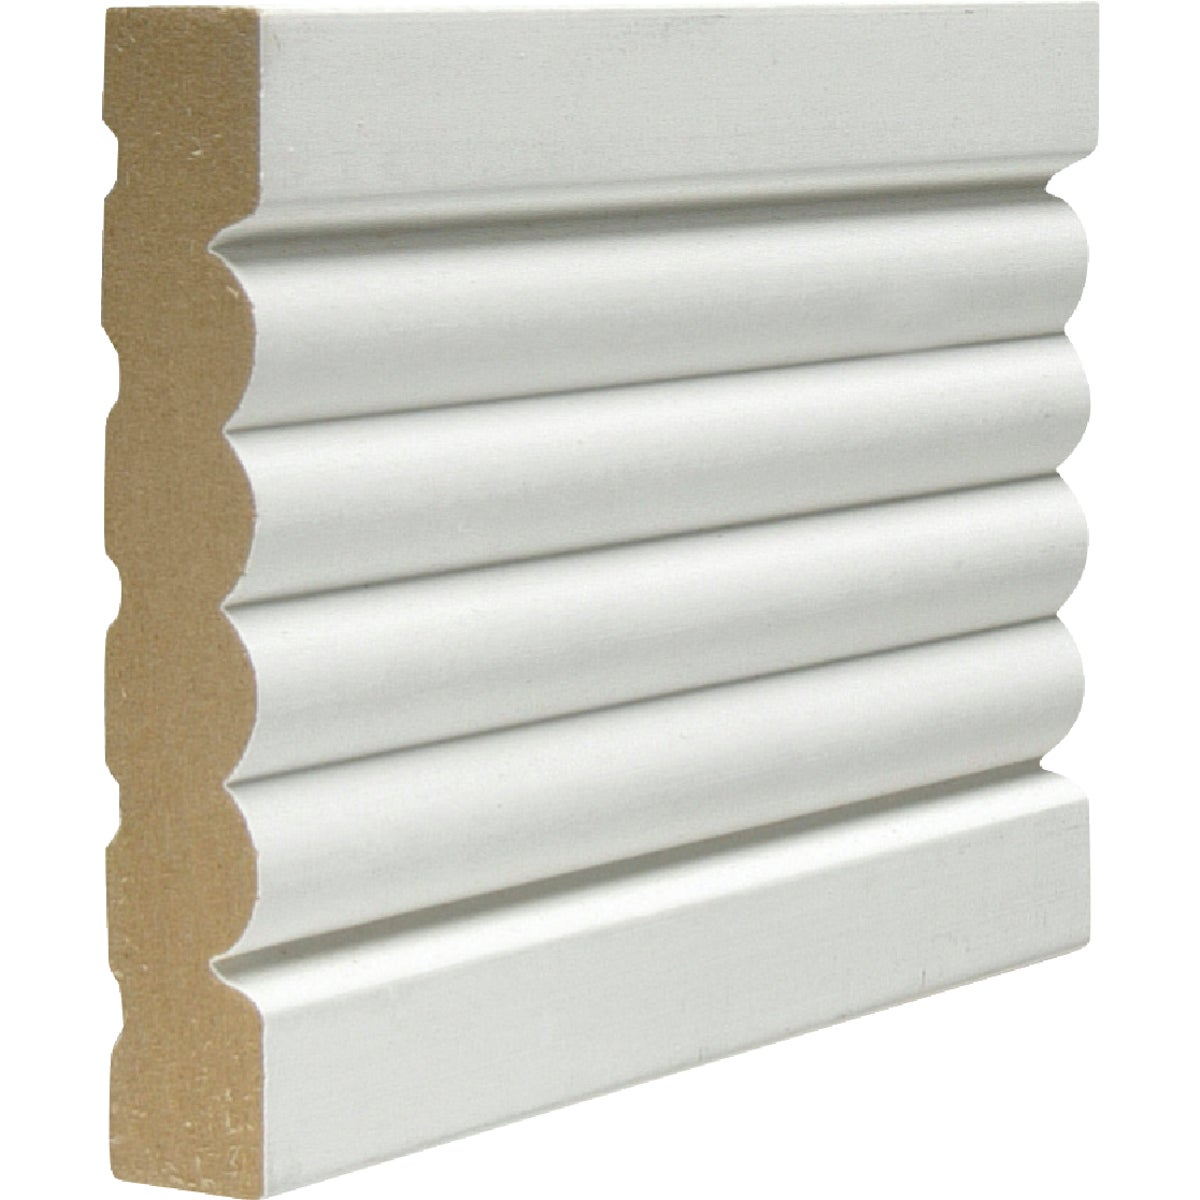 3-3/8X8MDF FLUTED CASING - 33880MDFP by Jim White Millwork